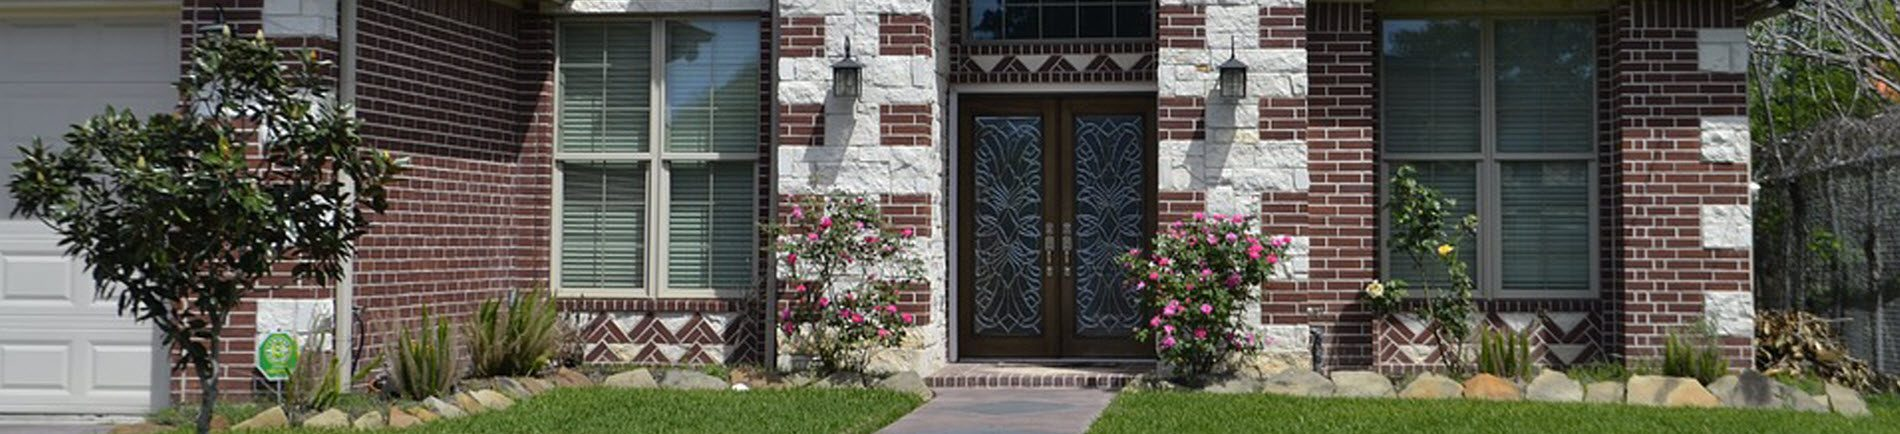 Home Inspections in Houston, Texas